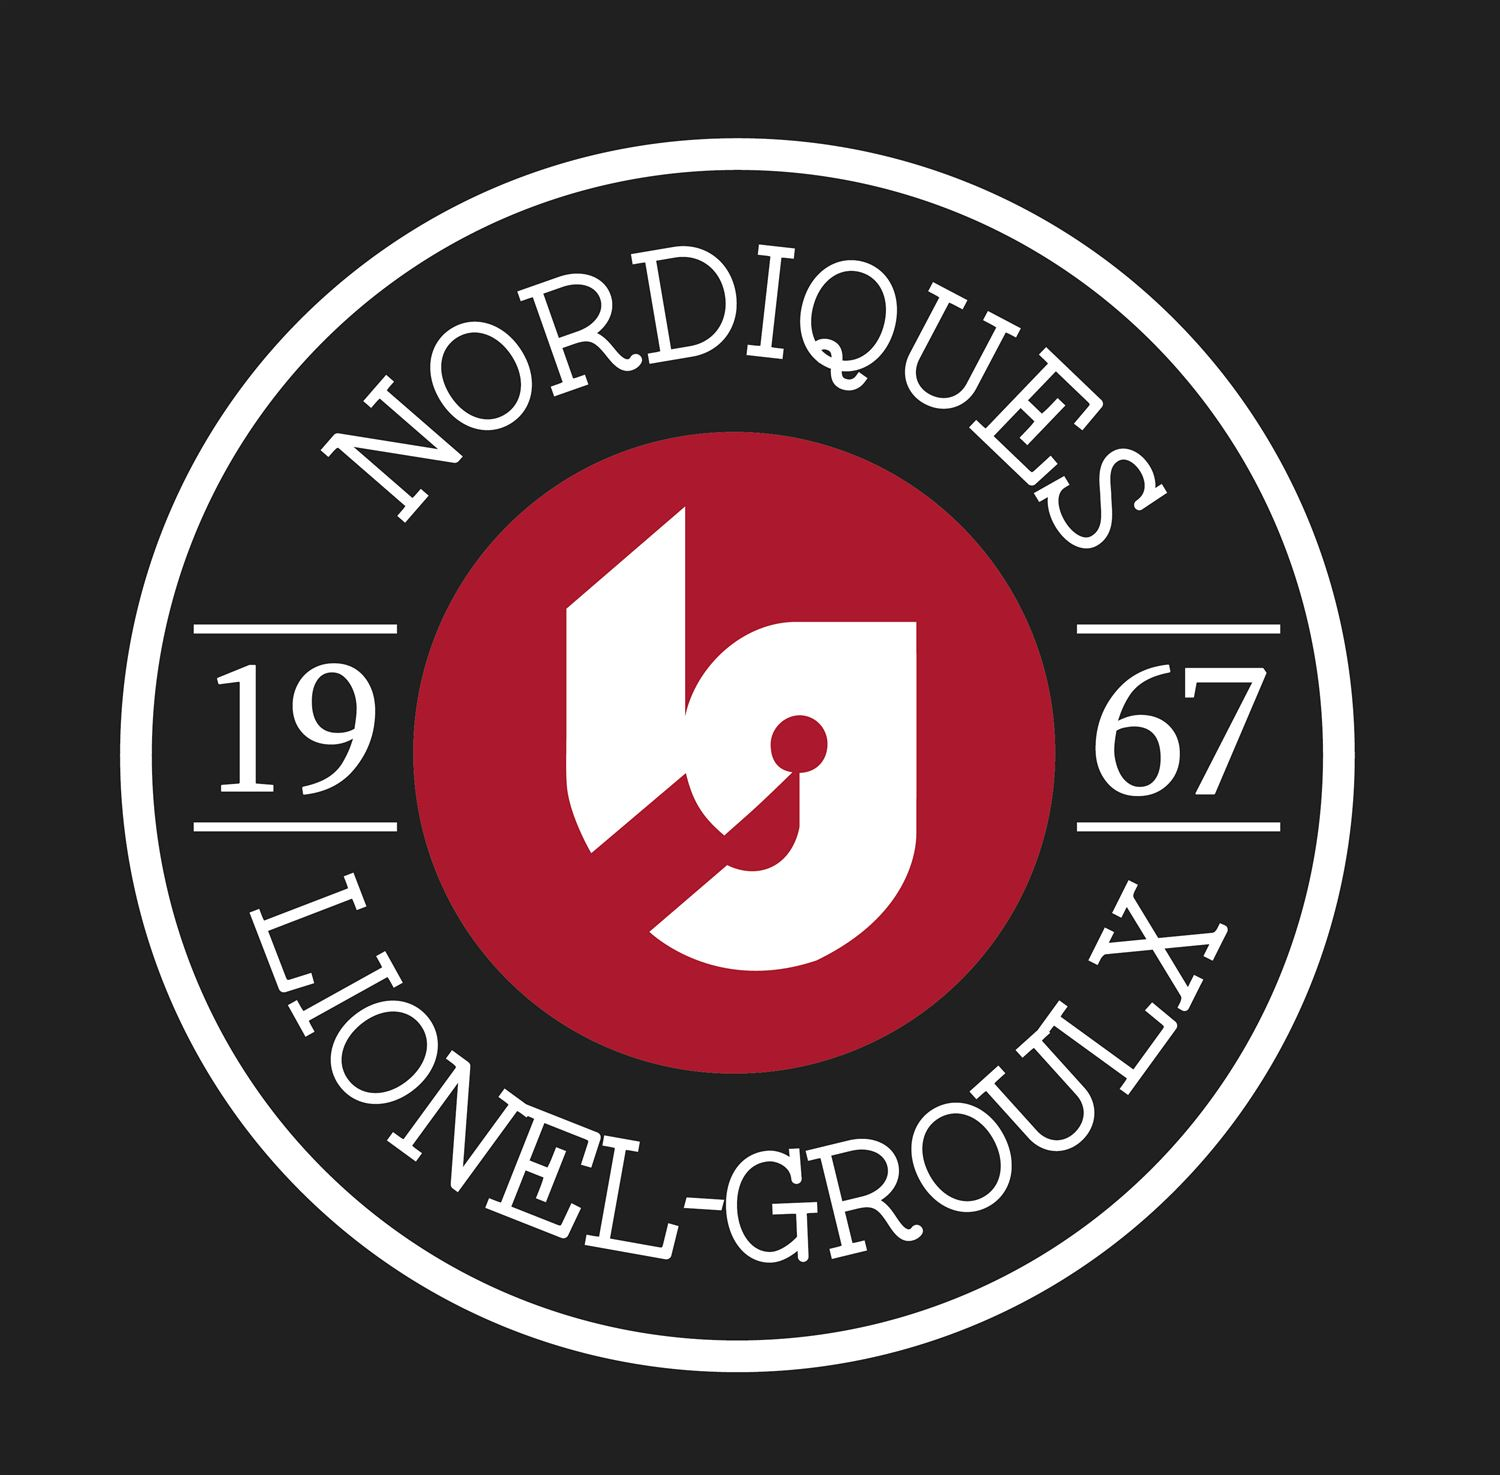 Collège Lionel-Groulx - Hockey Nordiques Collège Lionel-Groulx masculin